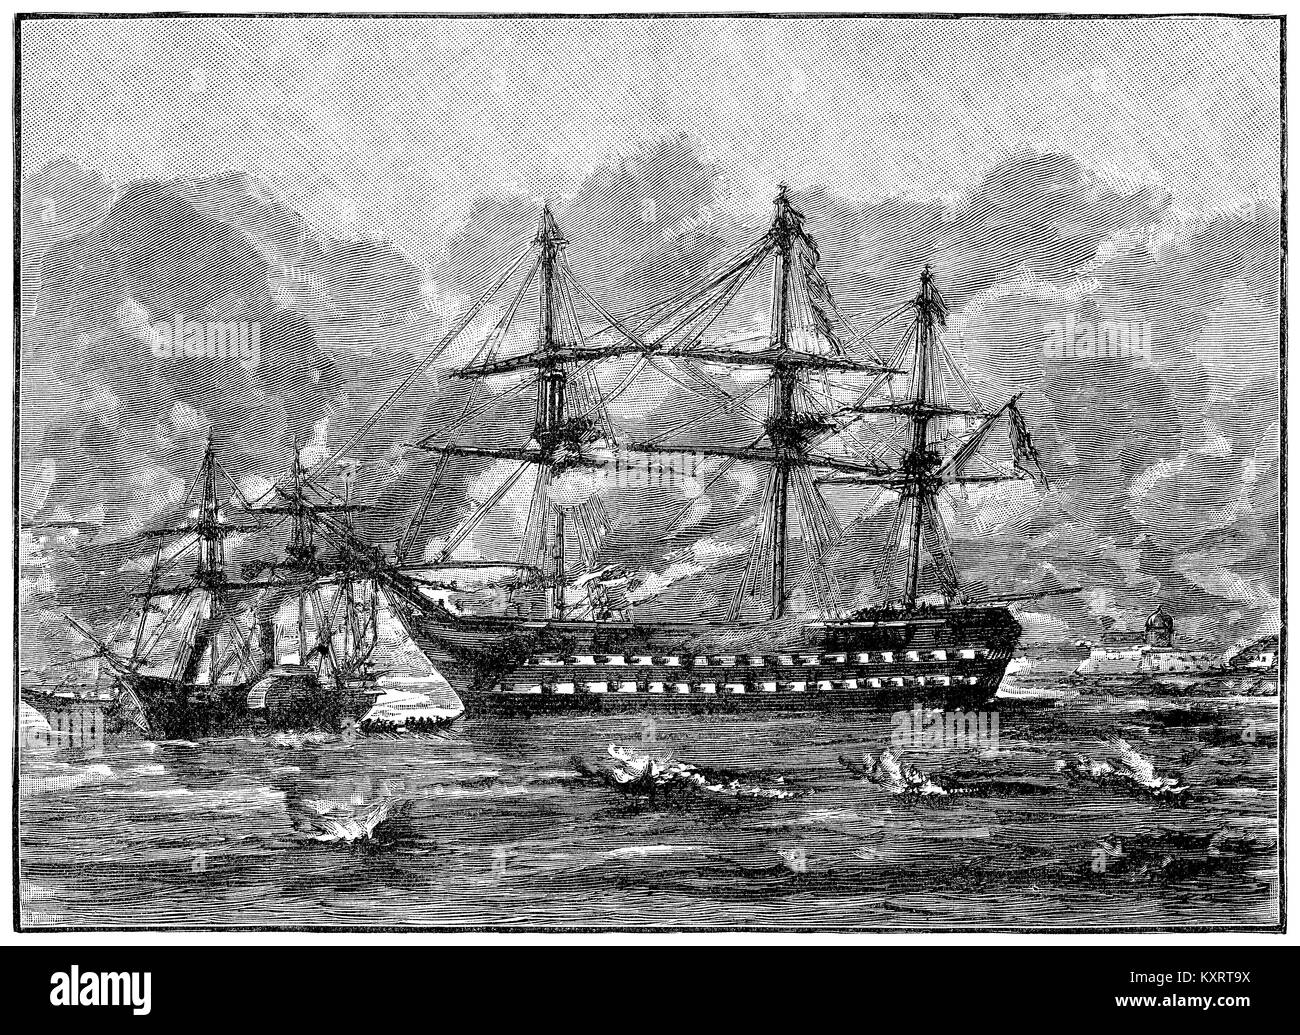 1891 wood engraving of H.M.S. Rodney at the bombardment of Sebastopol during the Crimean War on 17th October 1854. - Stock Image